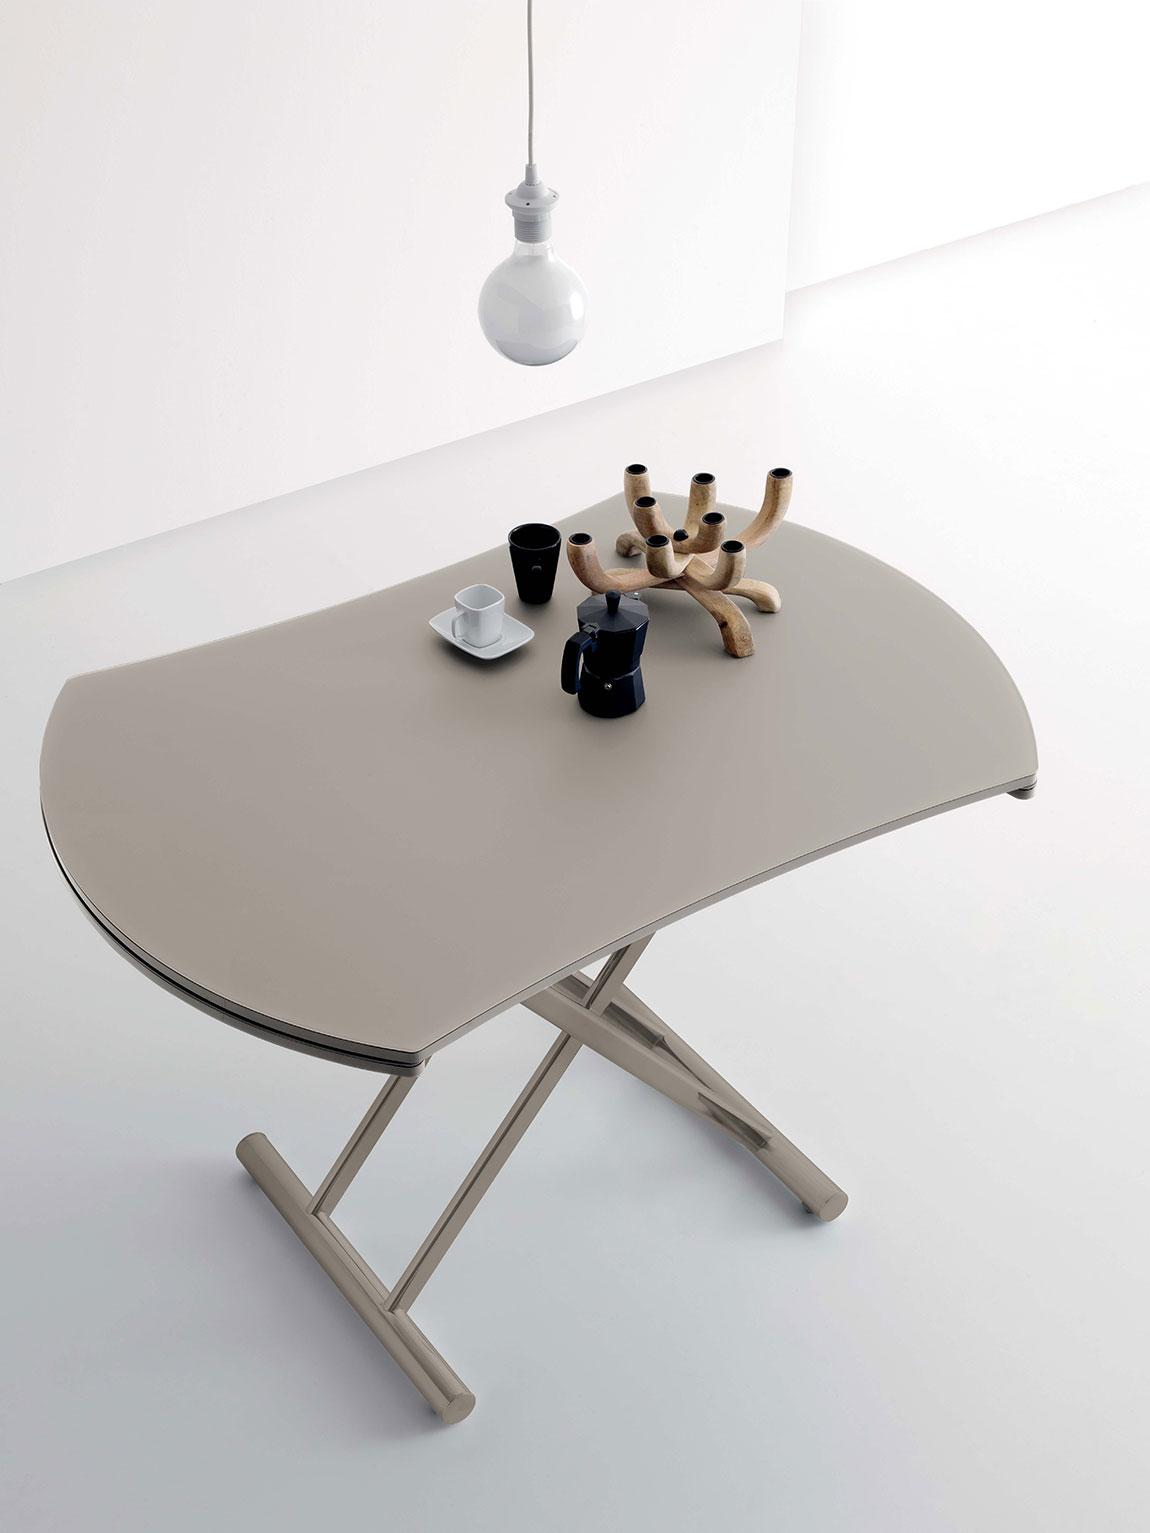 Up and down table transformable idd for Table up and down but